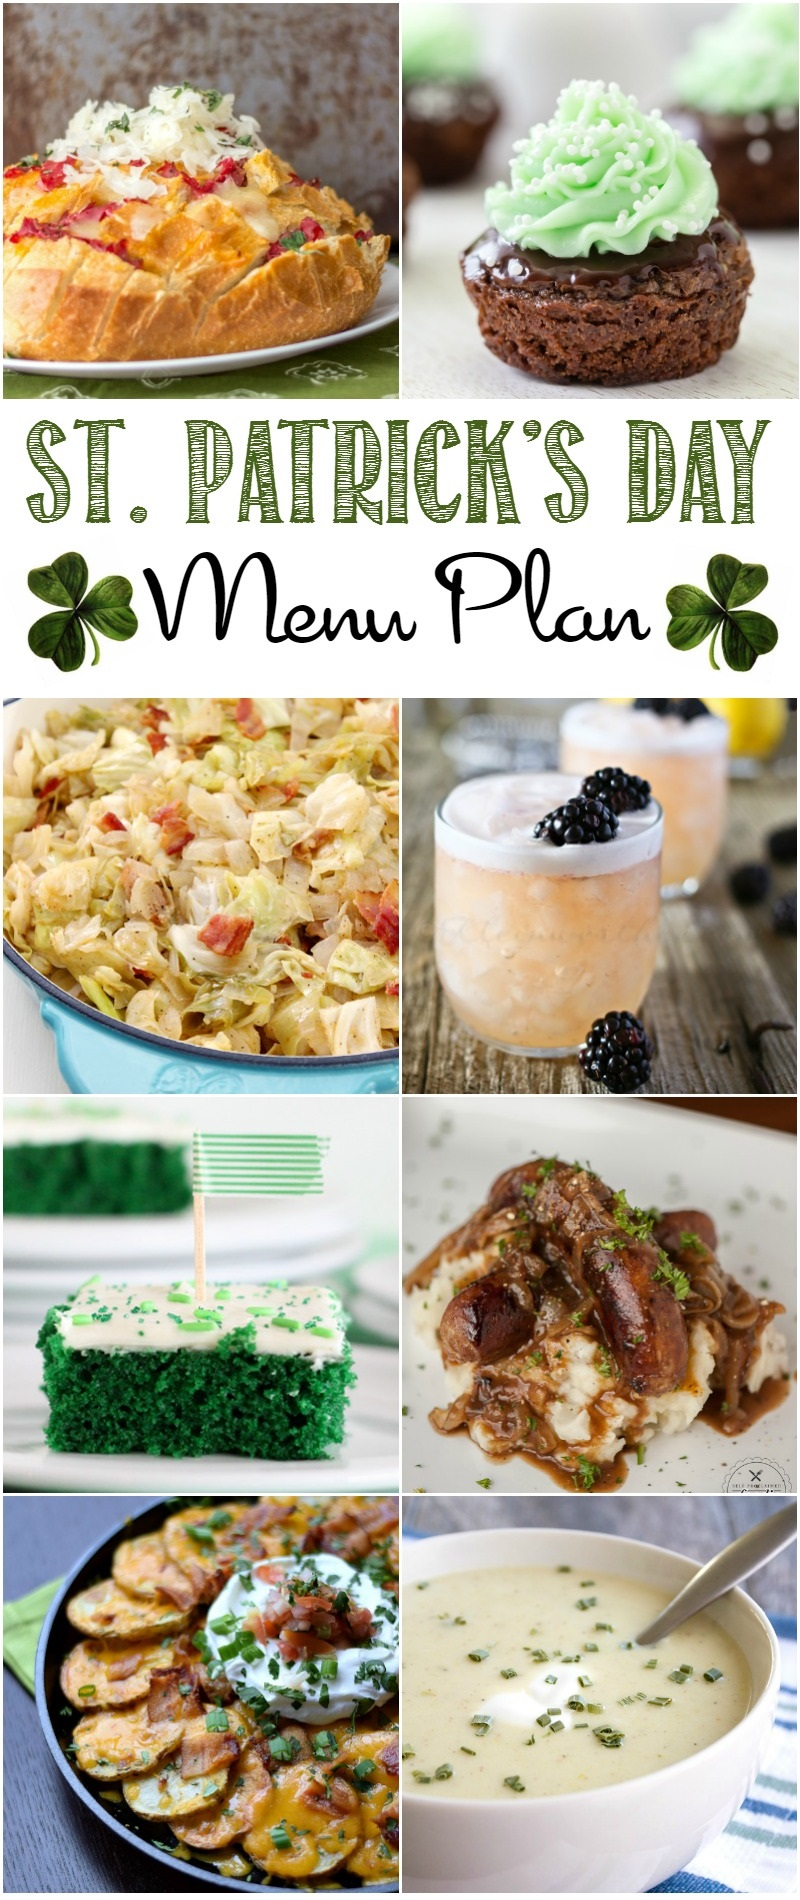 Have a lovely St. Patrick's Day with this fantastic meal plan designed just for this special day!